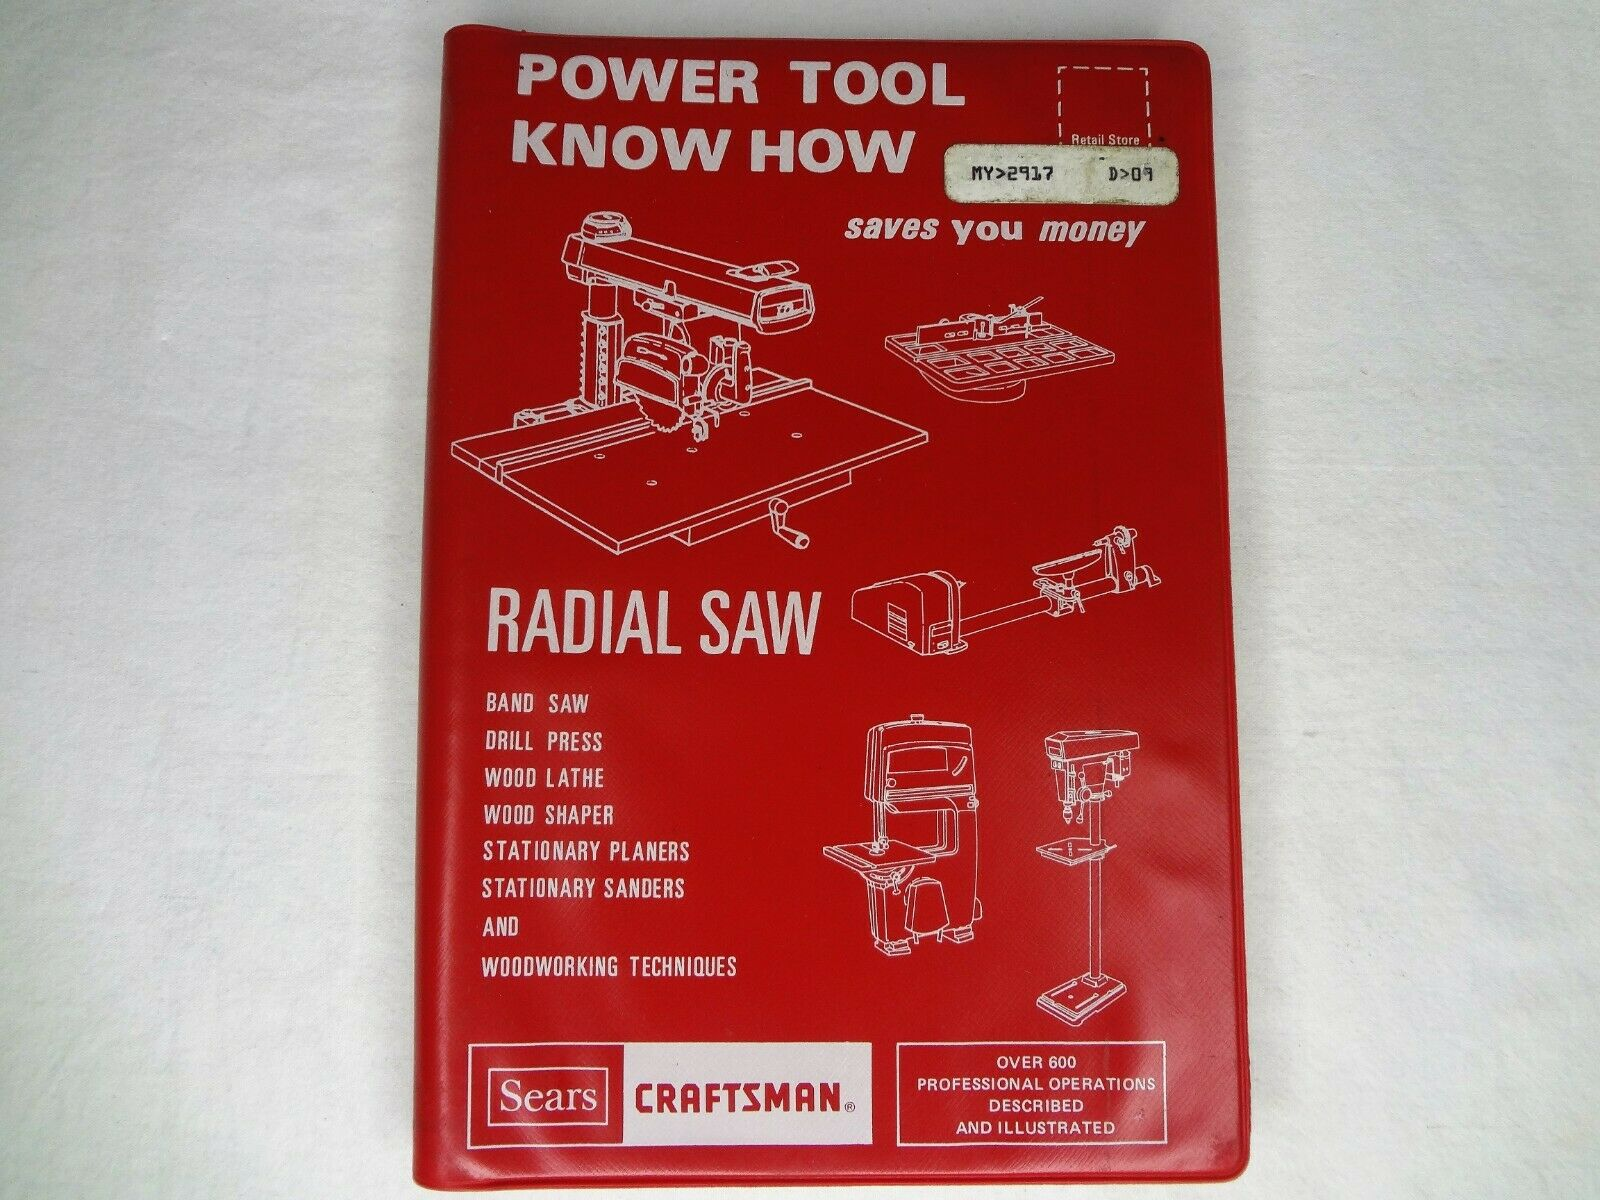 1975 Sears Craftsman Power Tool Know How Radial Saw Manual 9-2917